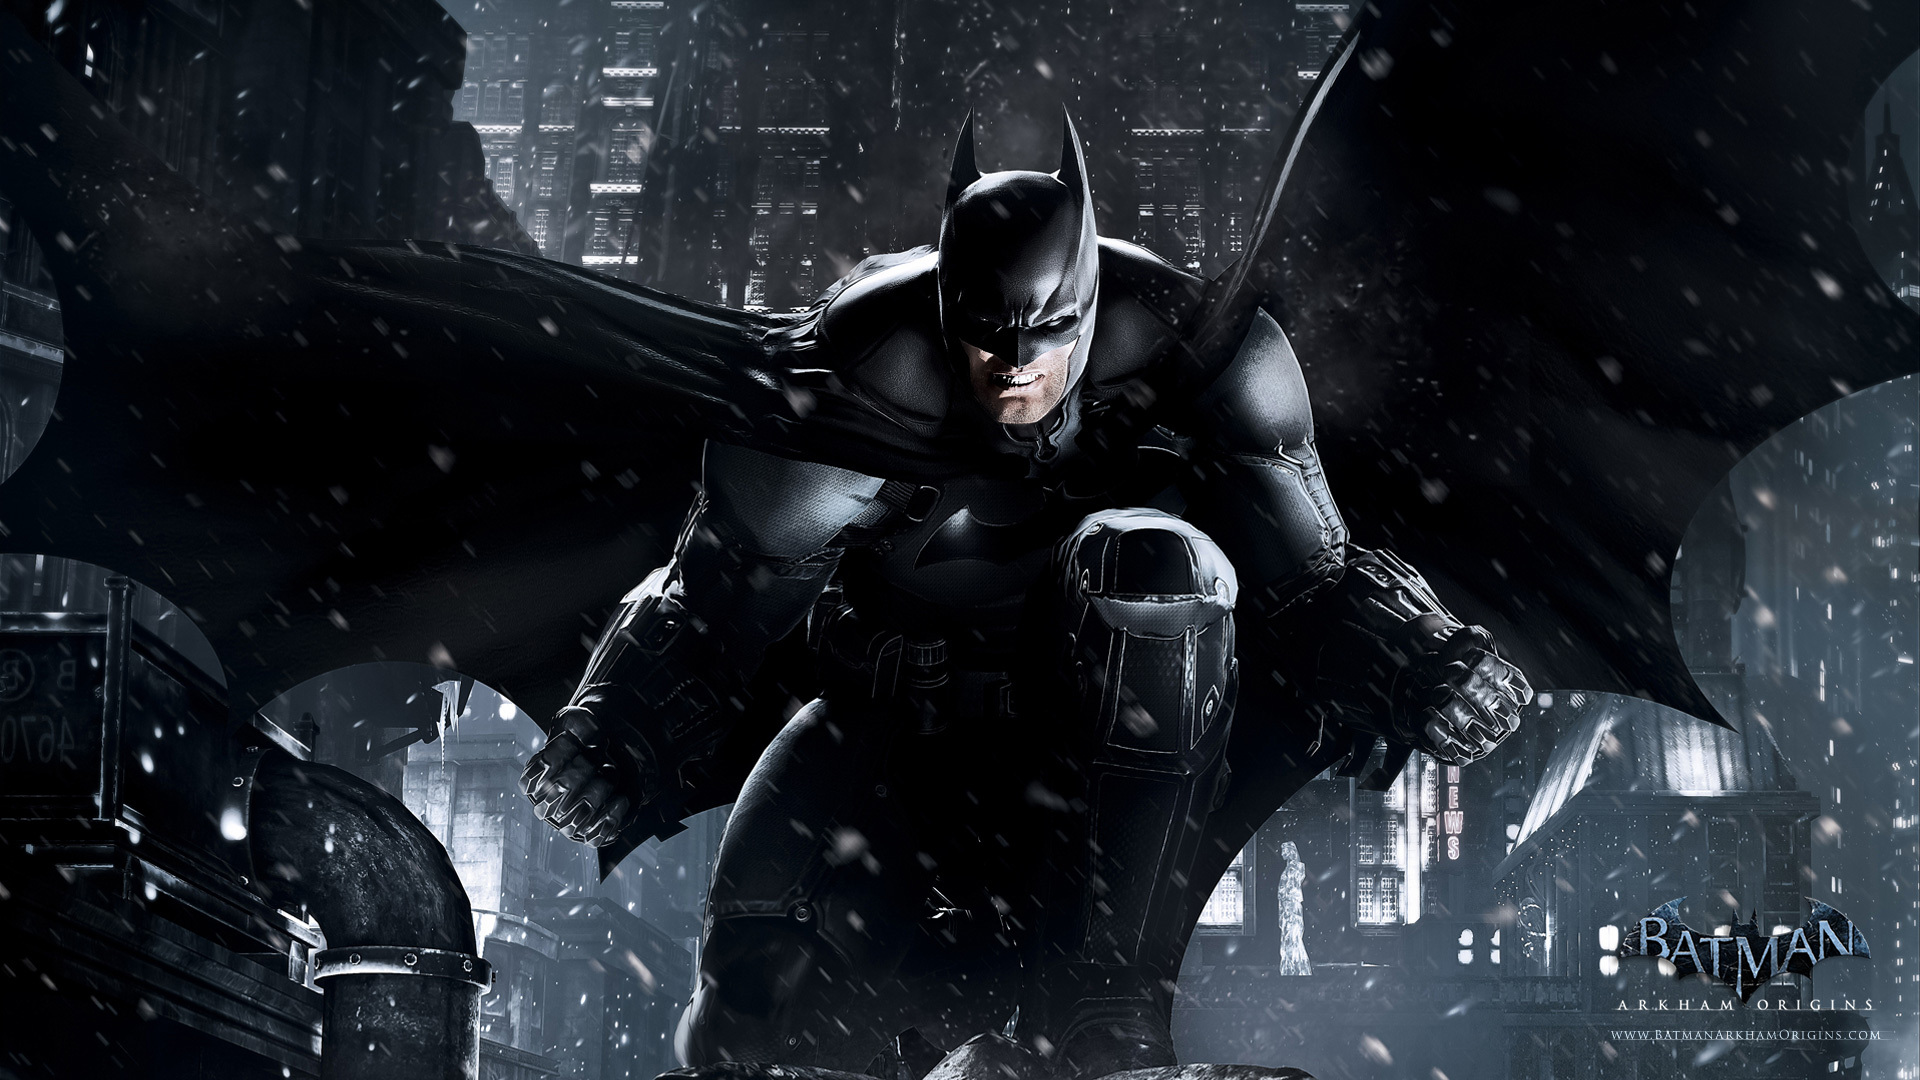 BROWSE batman hd wallpapers for android phones  HD Photo Wallpaper 1920x1080